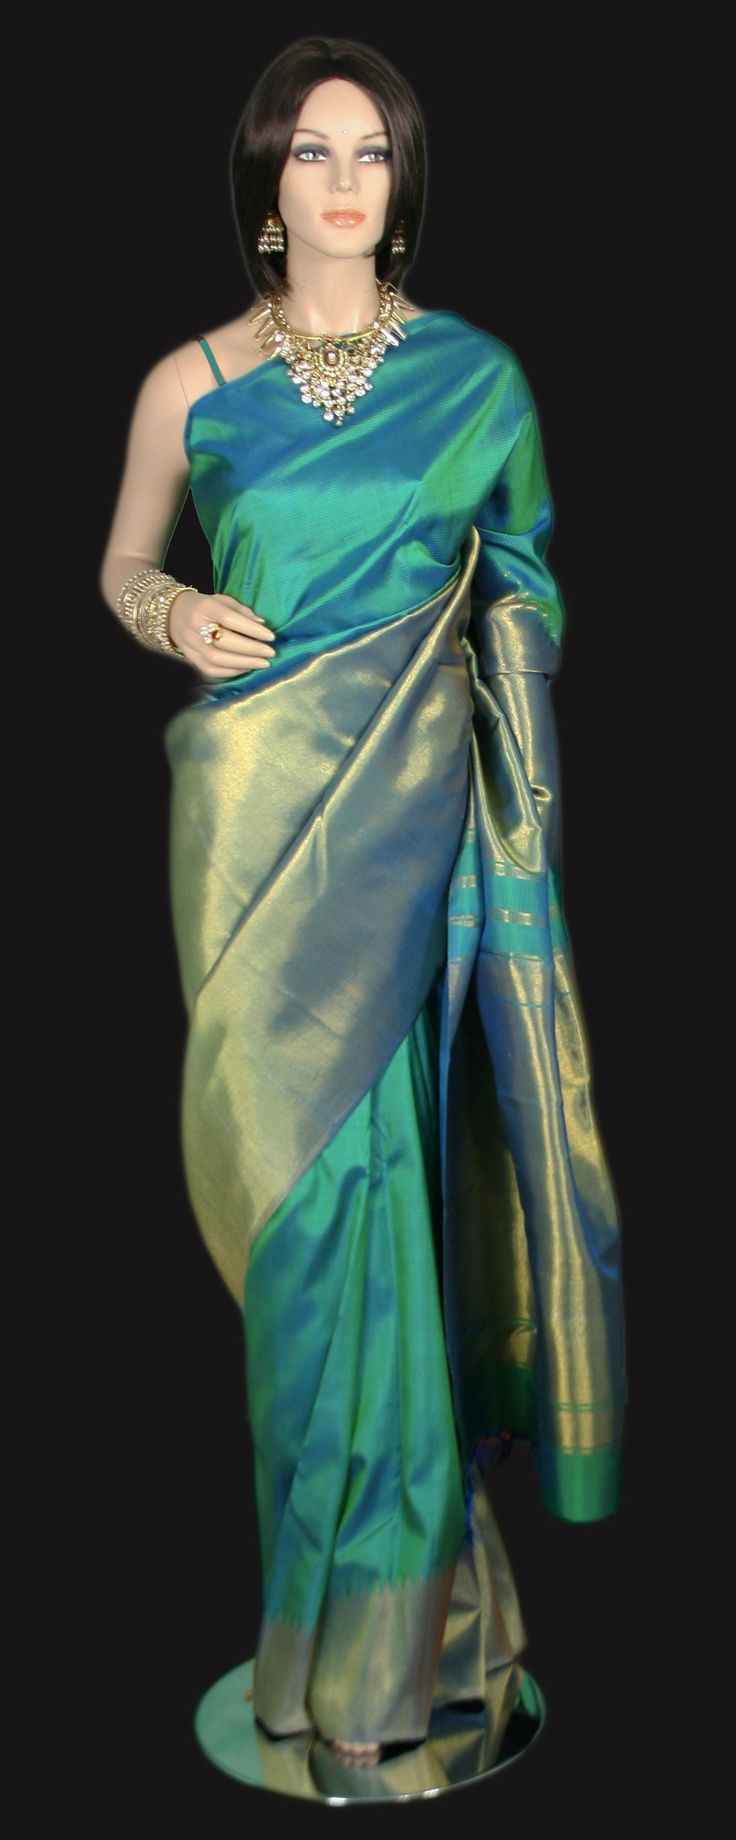 Rising Border Zari Gold Aqua Kanjeevaram Saree